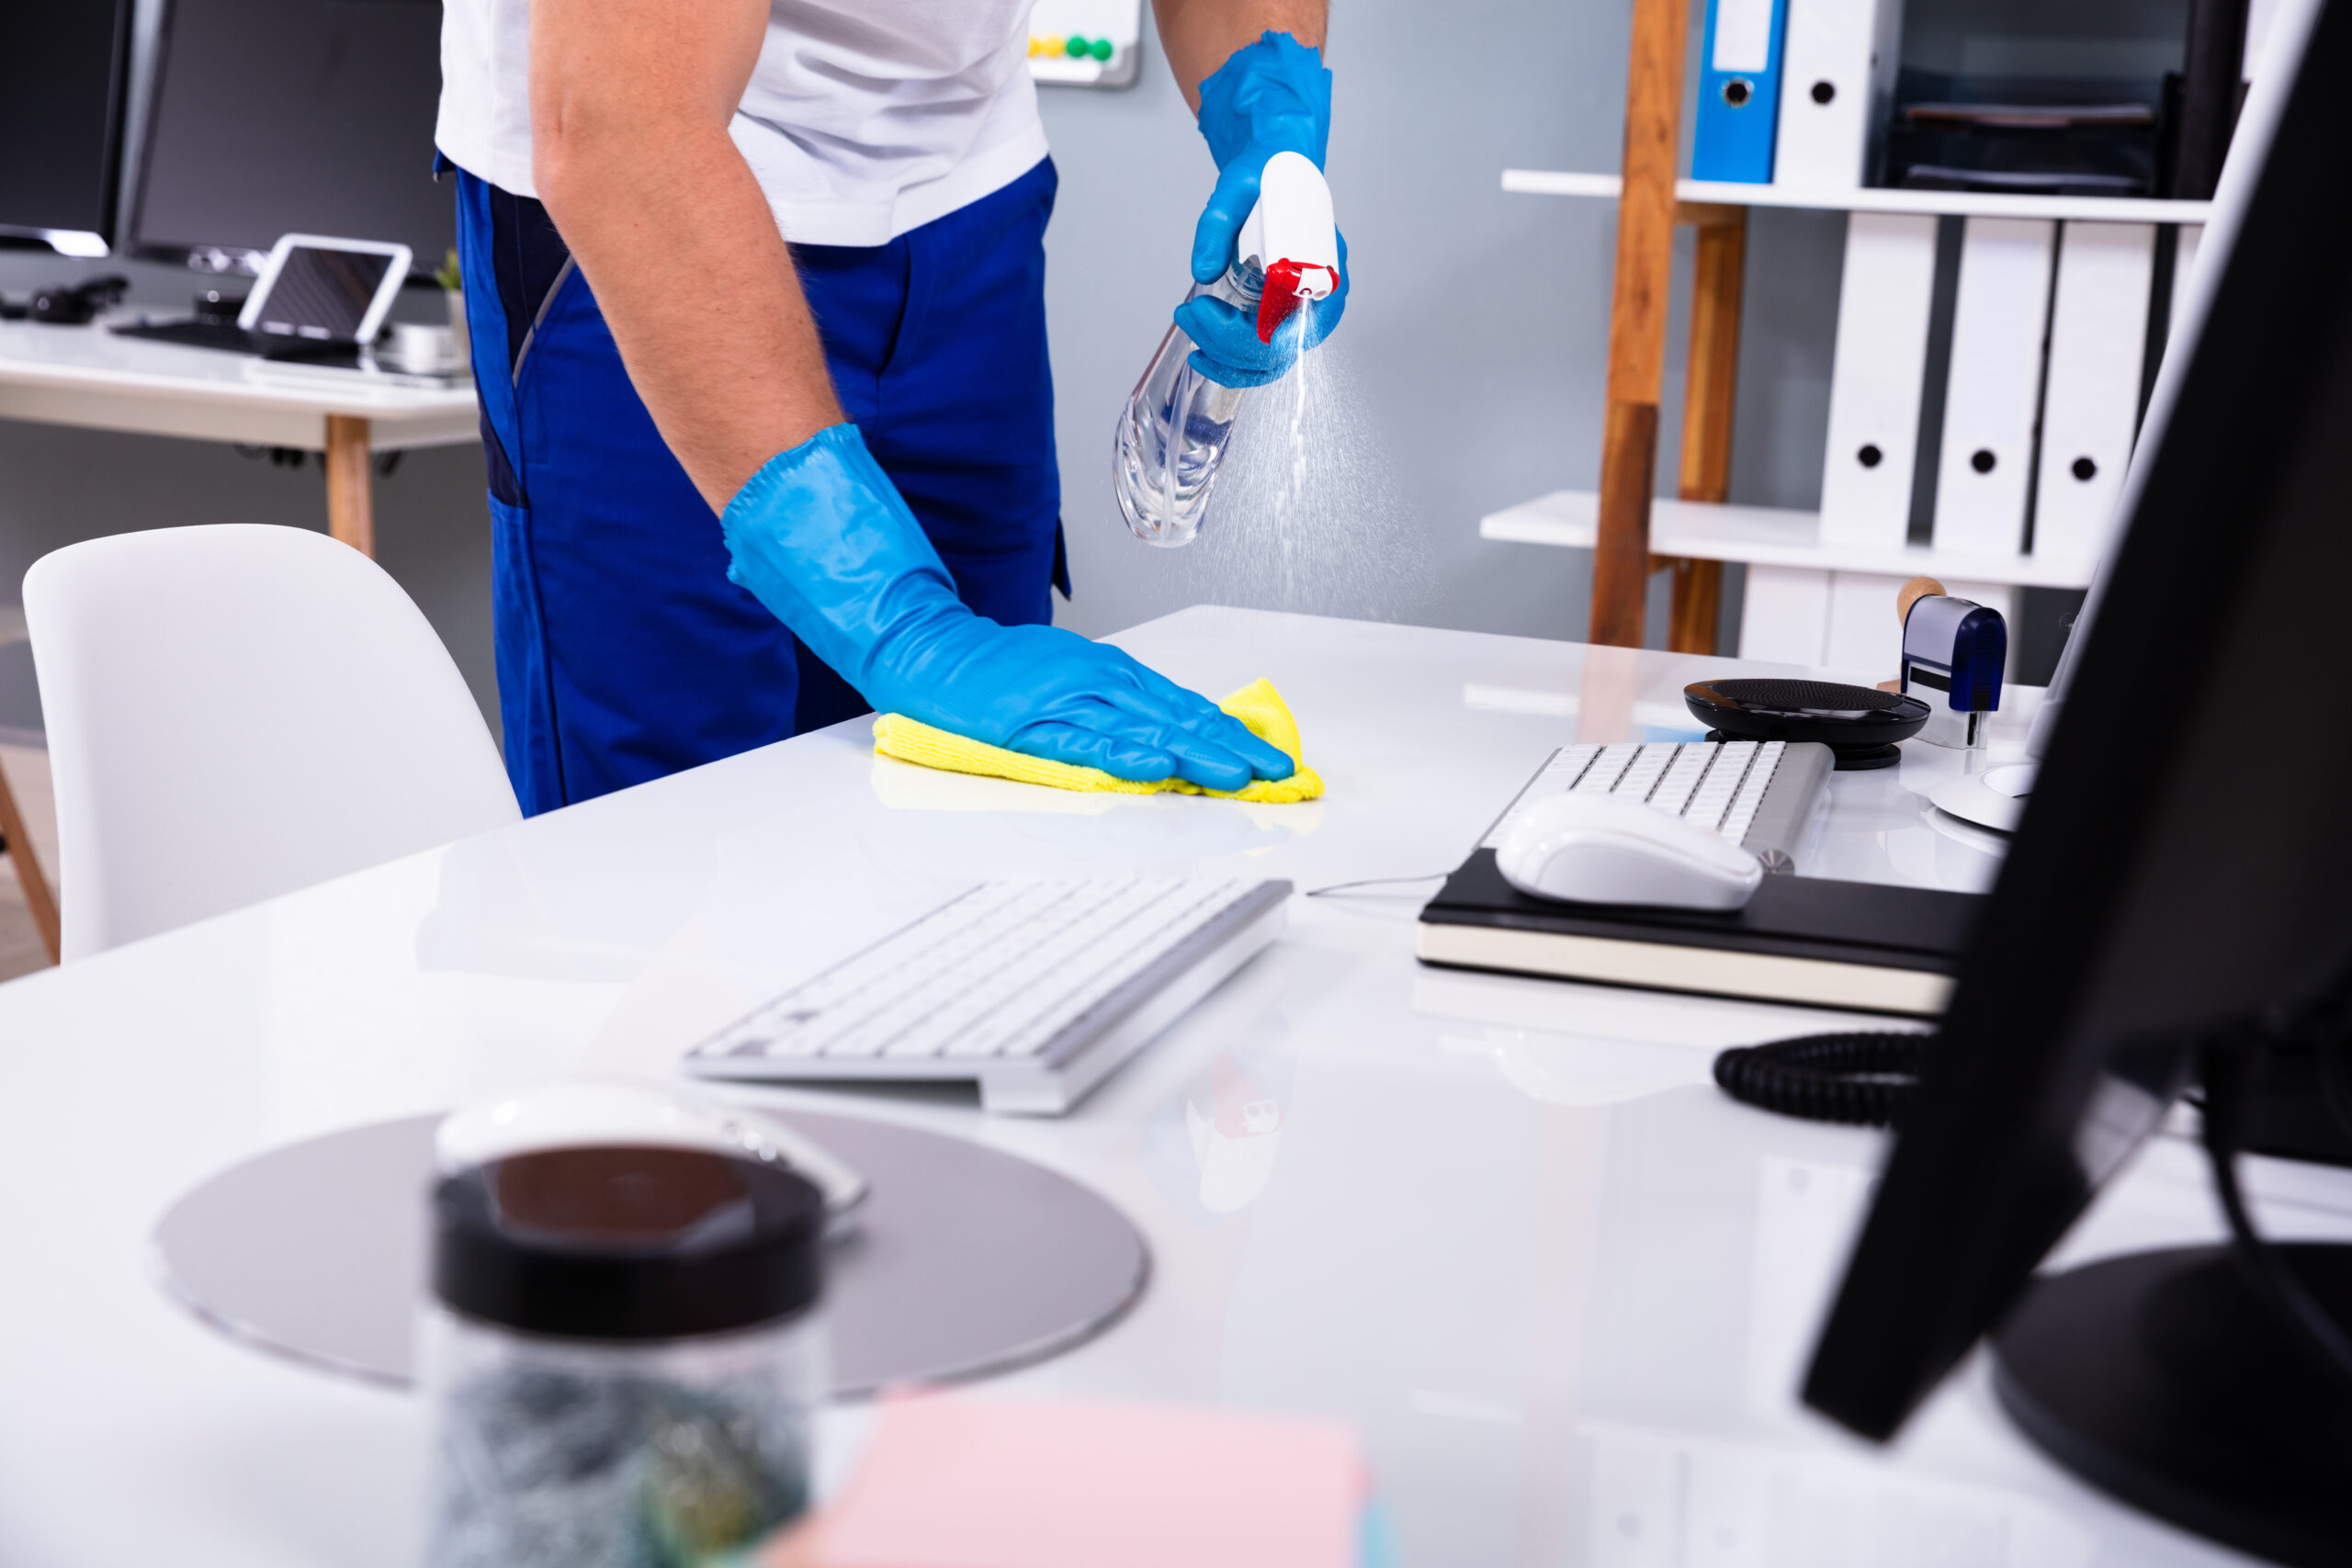 professional office cleaners cleaning on office workspace in San Francisco